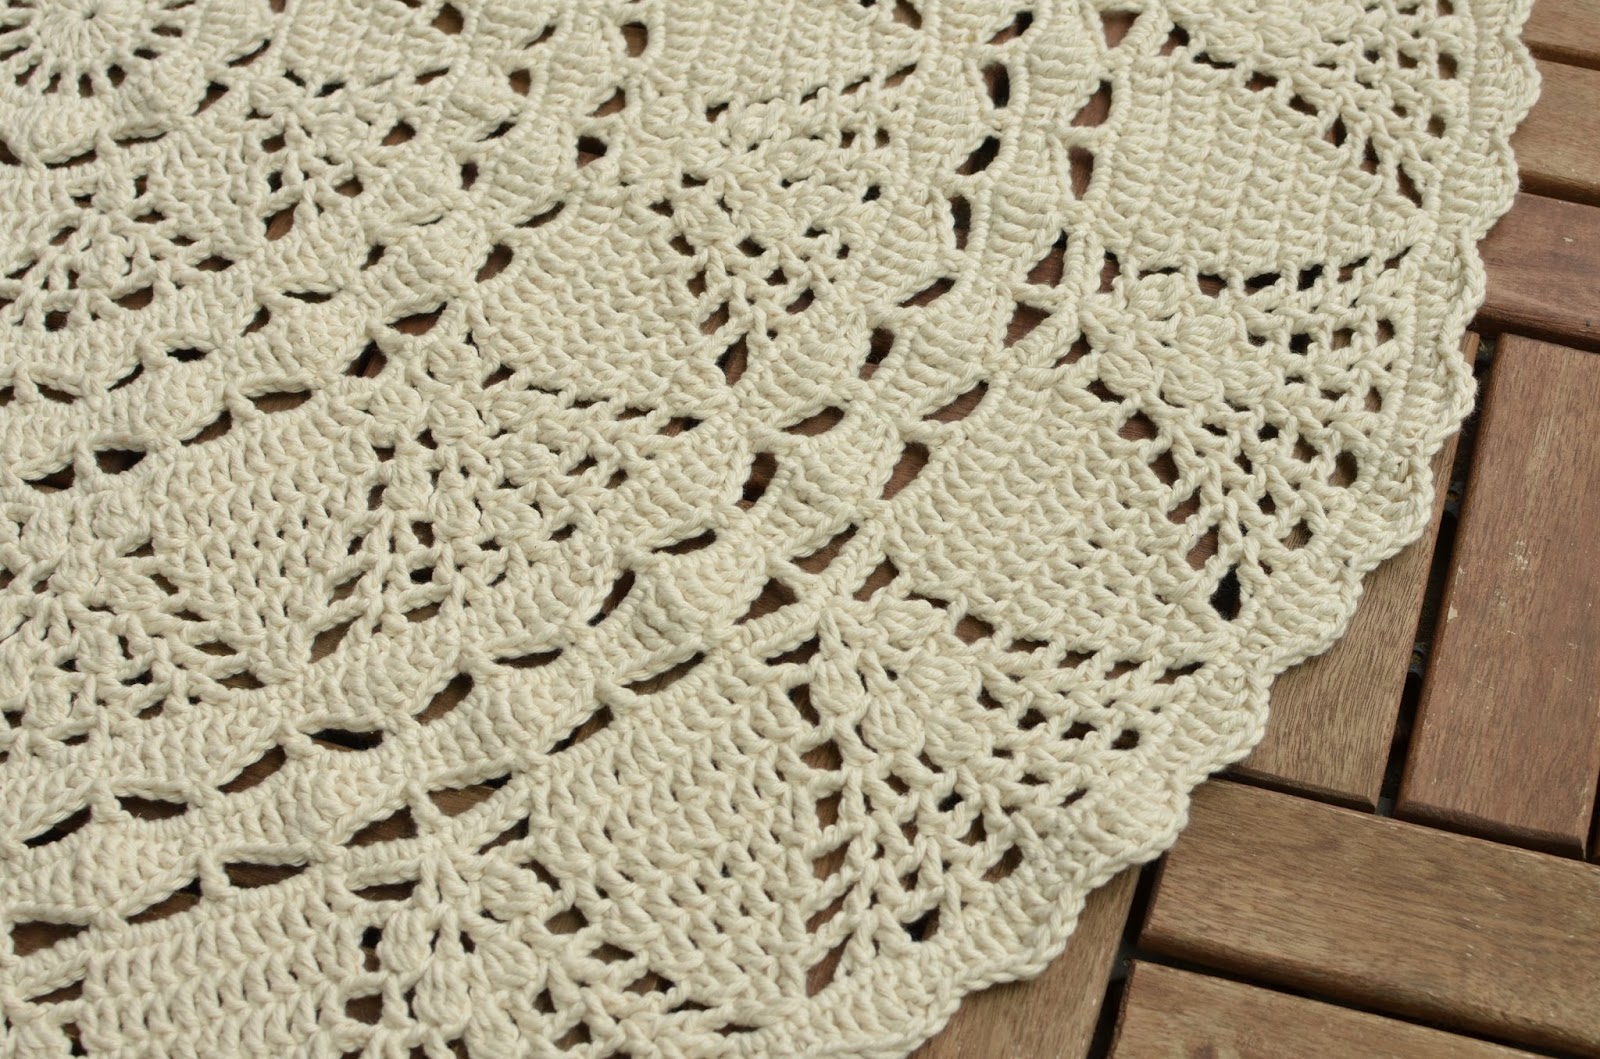 Outstanding Crochet Mat Patterns Crest - Sewing Pattern for Wedding ...